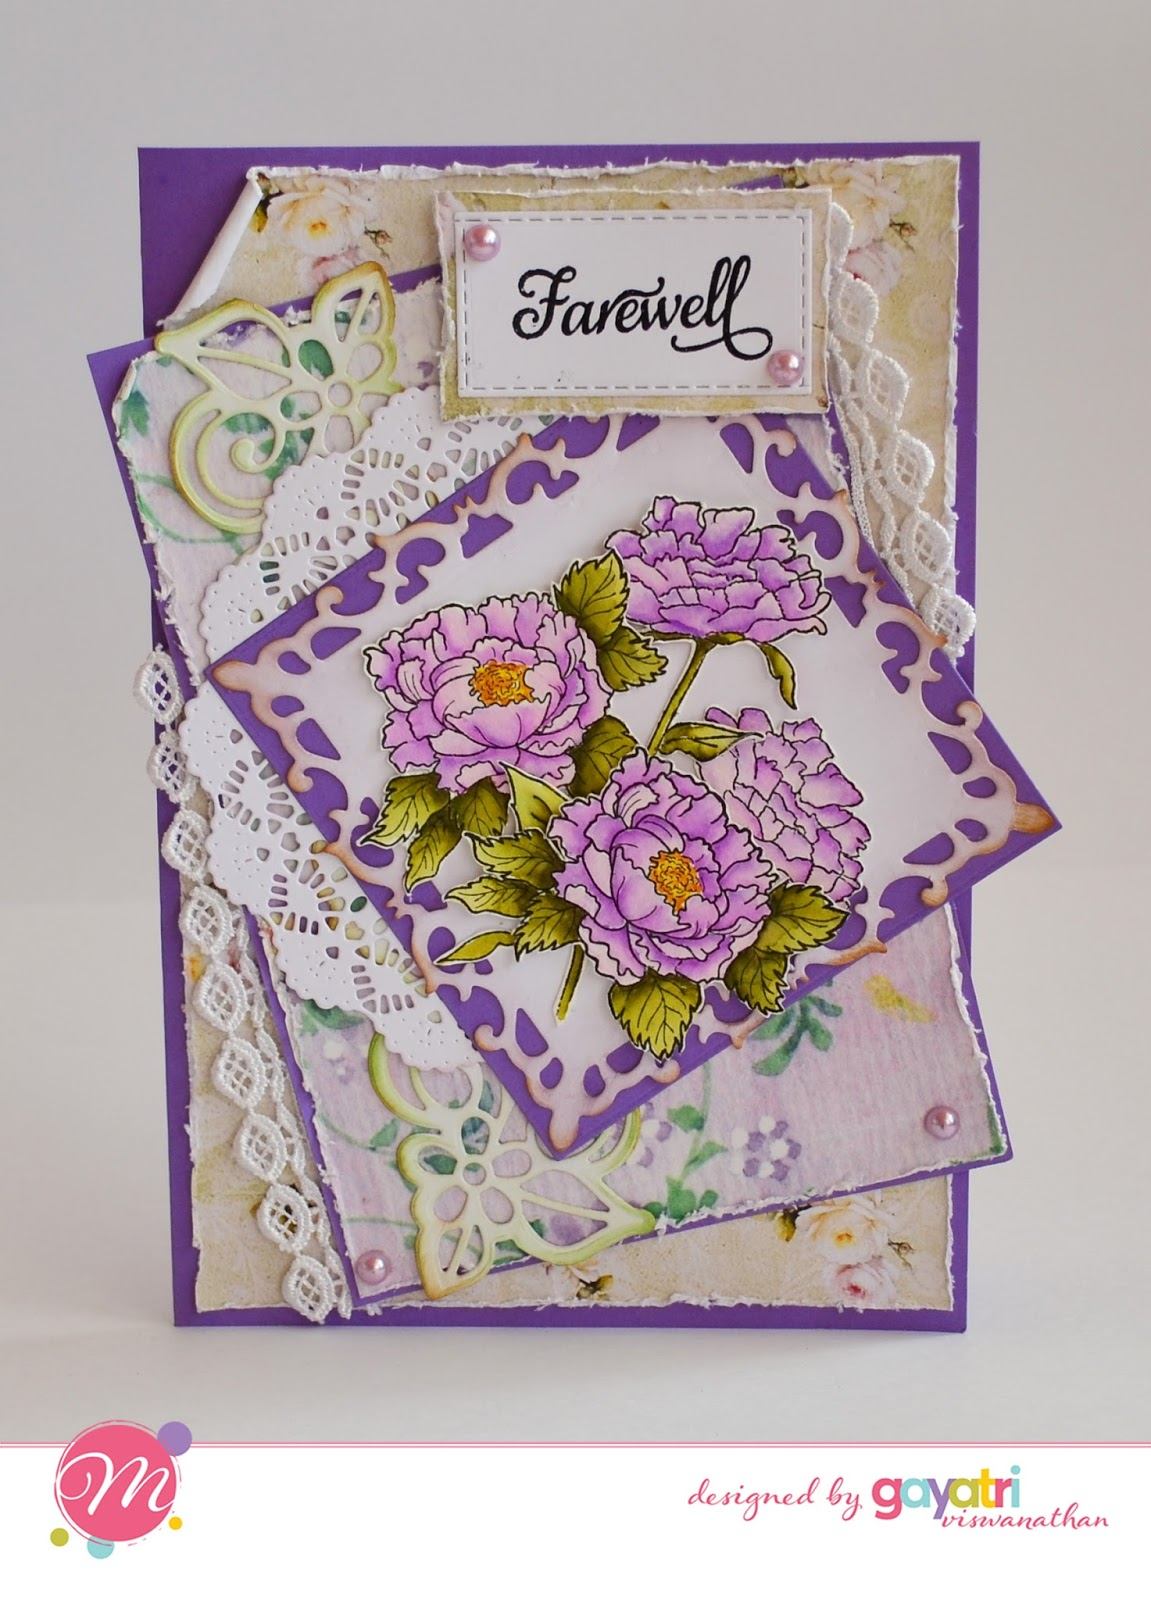 Farewell card using Mudra Craft Stamps [Guest Post by Gayatri] 1